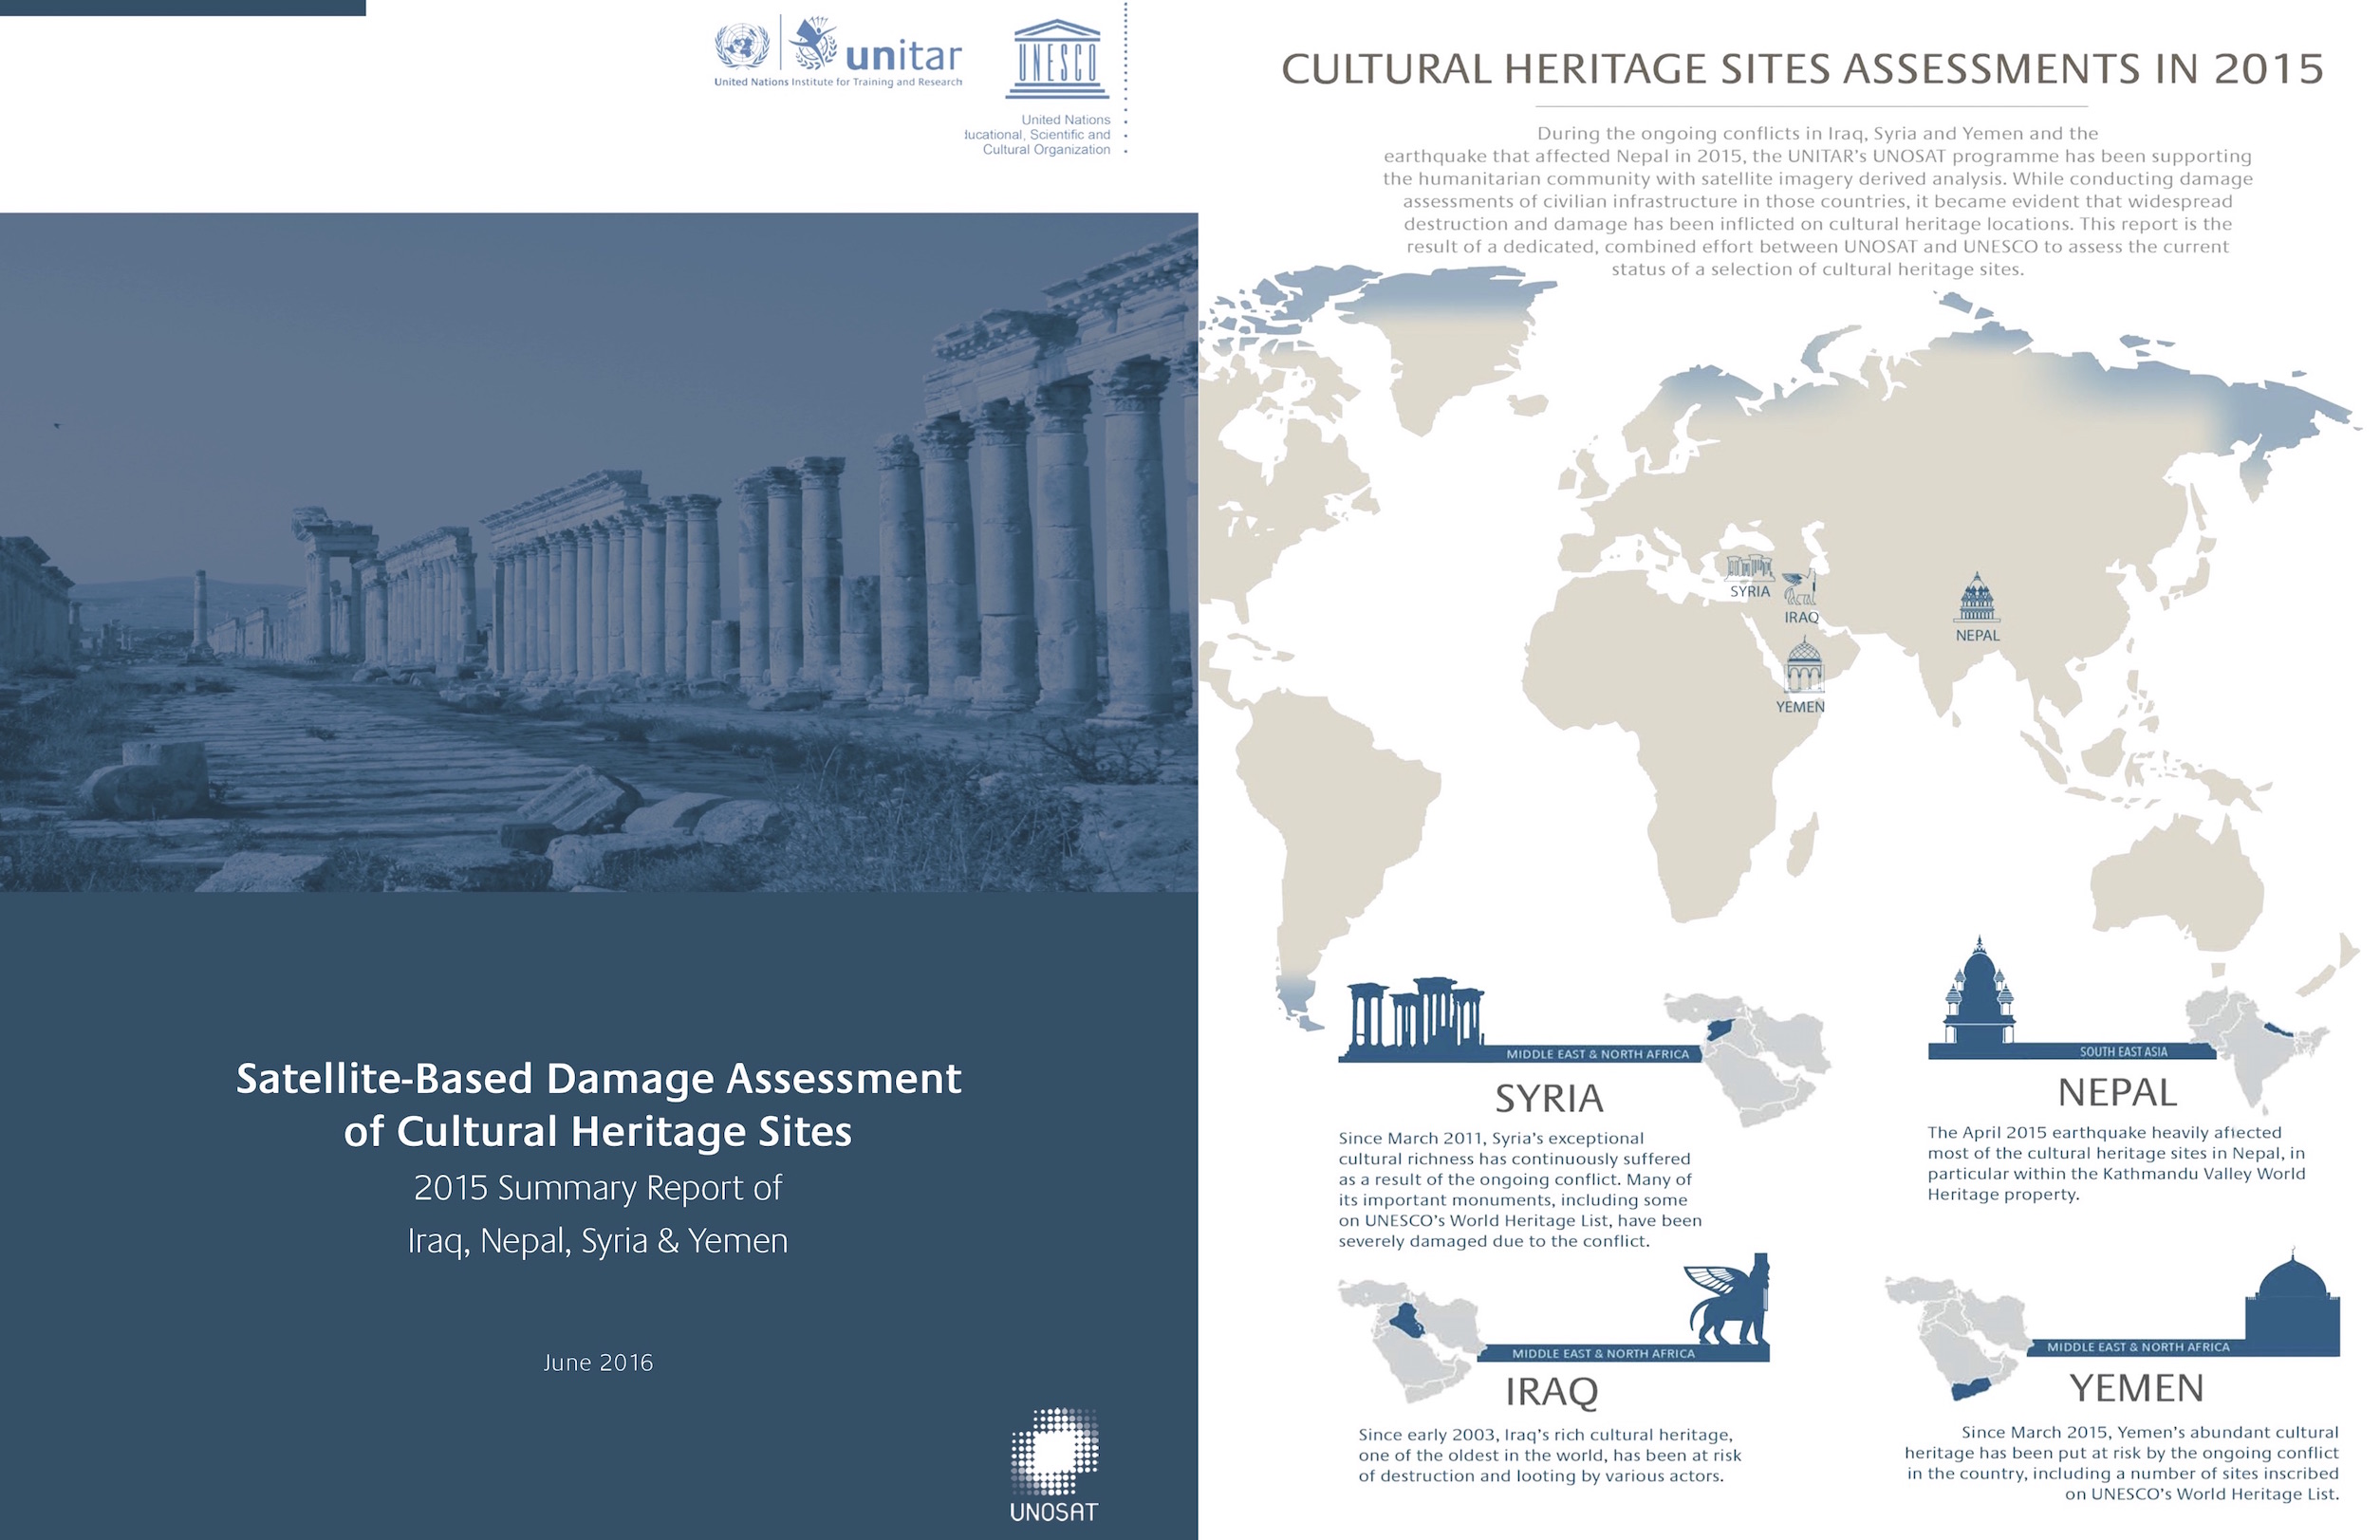 UNESCO-UNITAR Report: Satellite-Based Damage Assessment of Cultural Heritage Sites